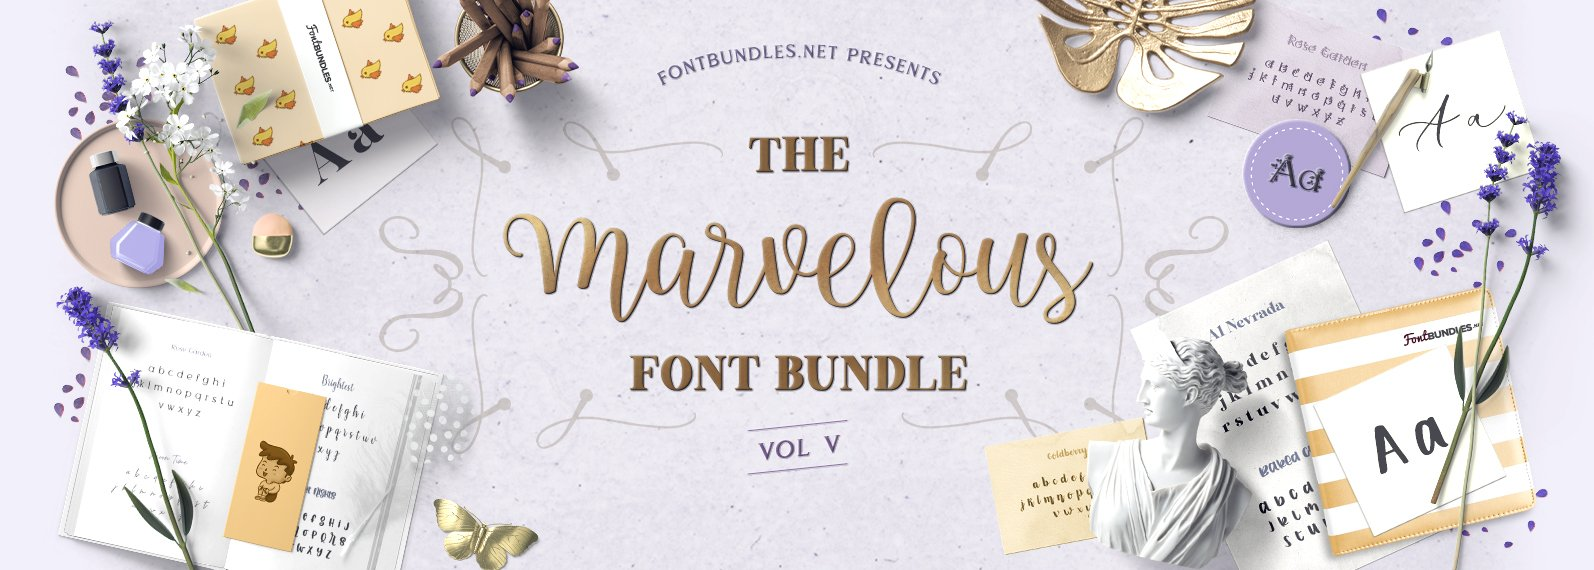 The Marvelous Font Bundle V Cover